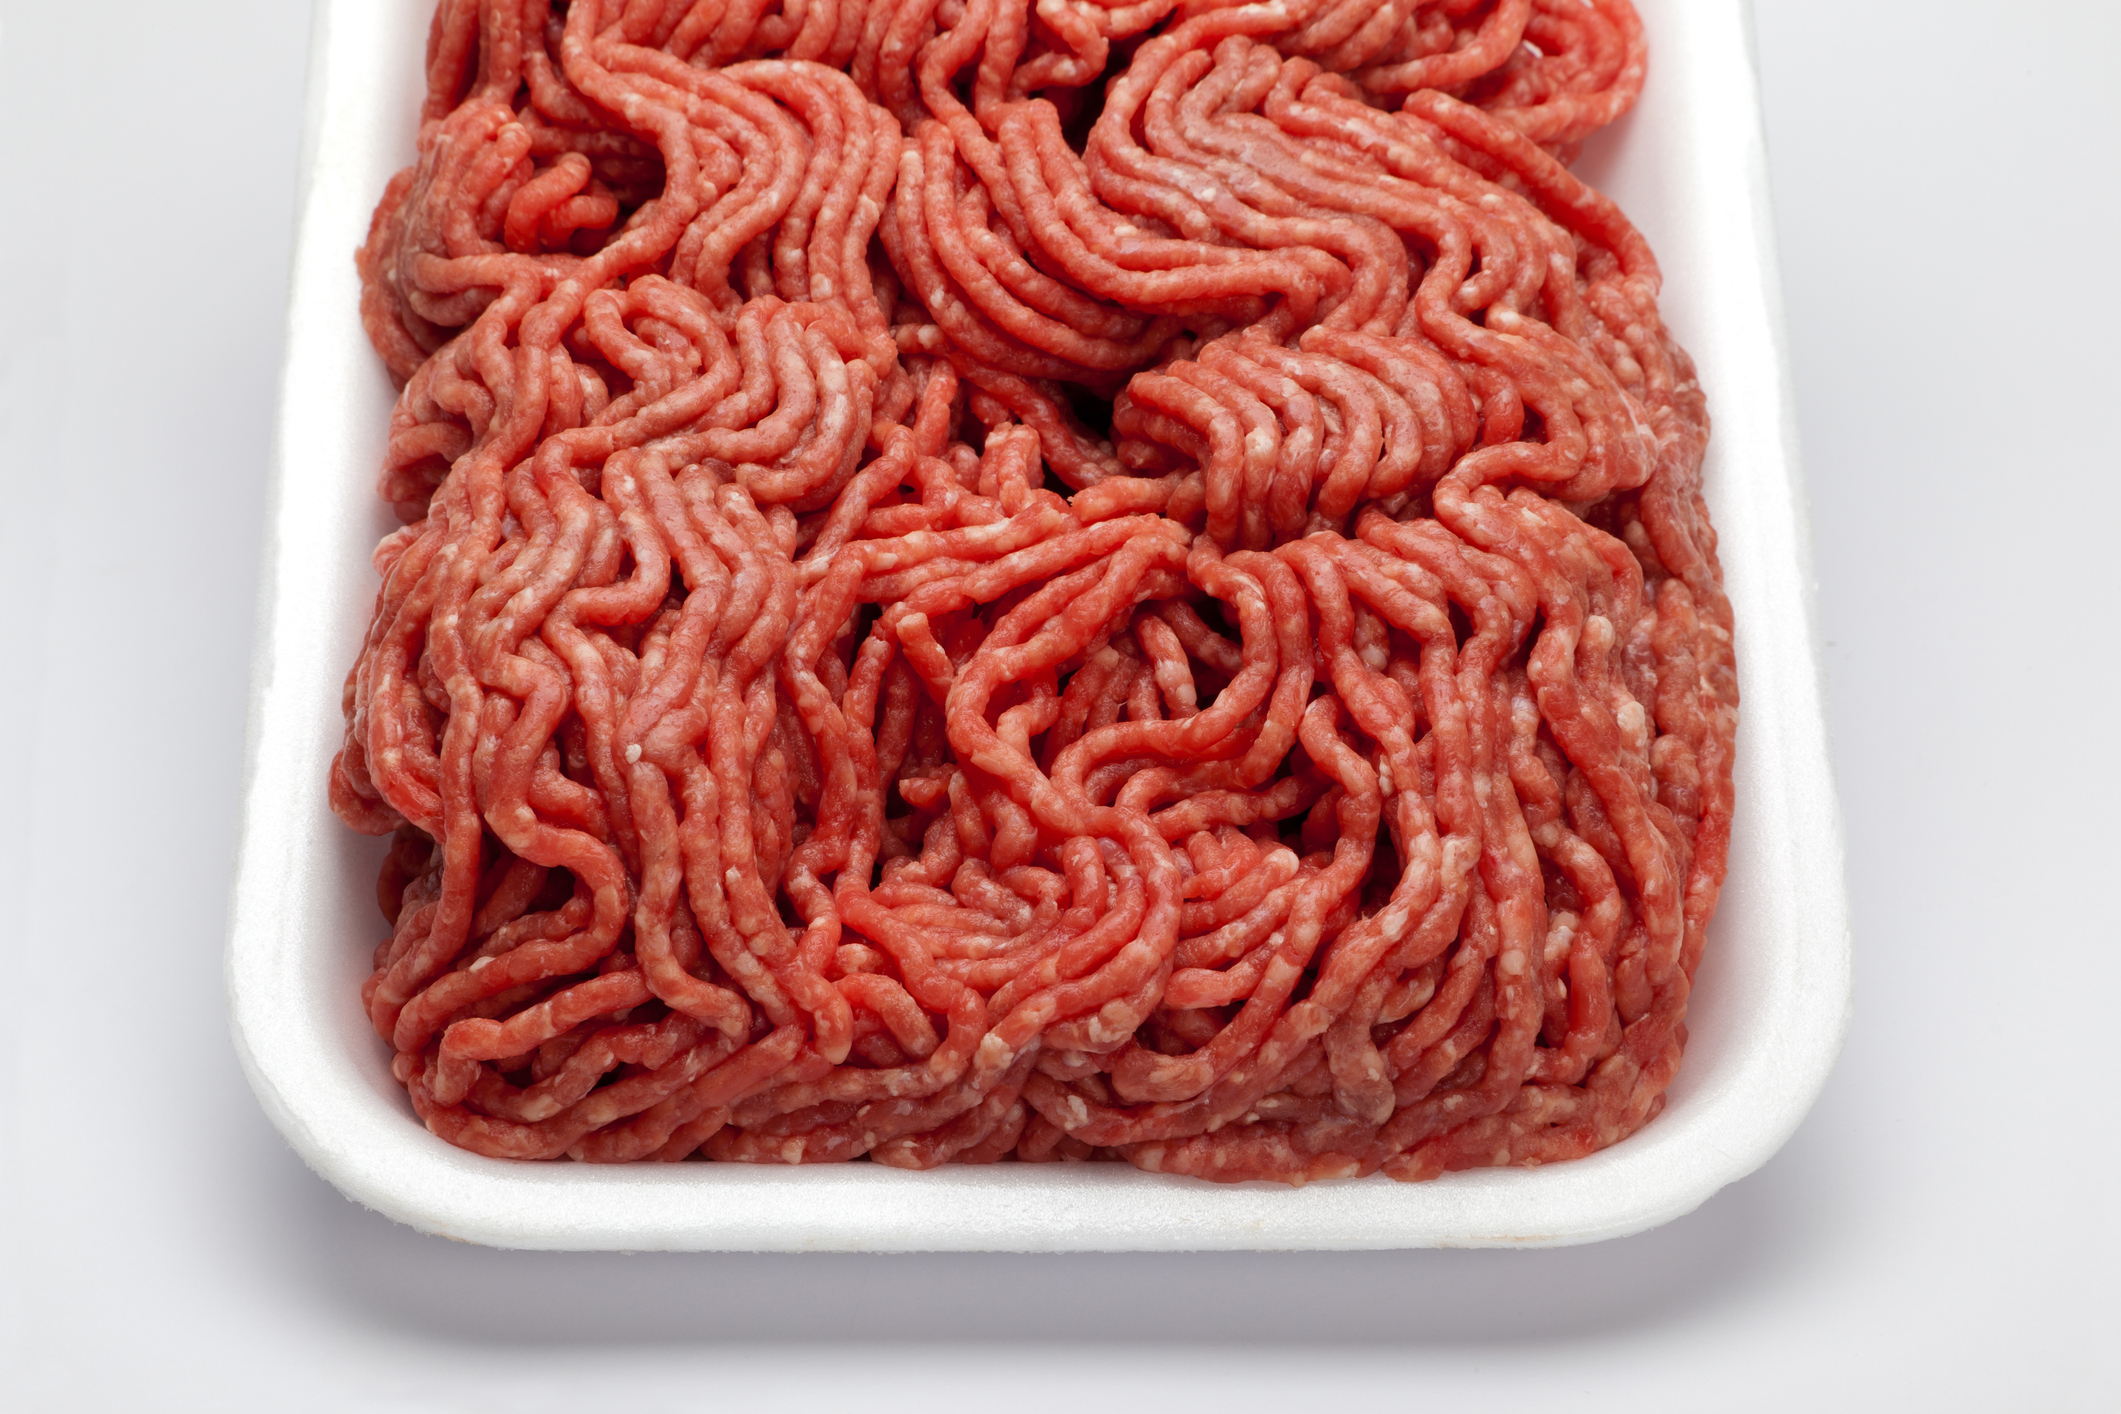 Ground beef (Getty Images)